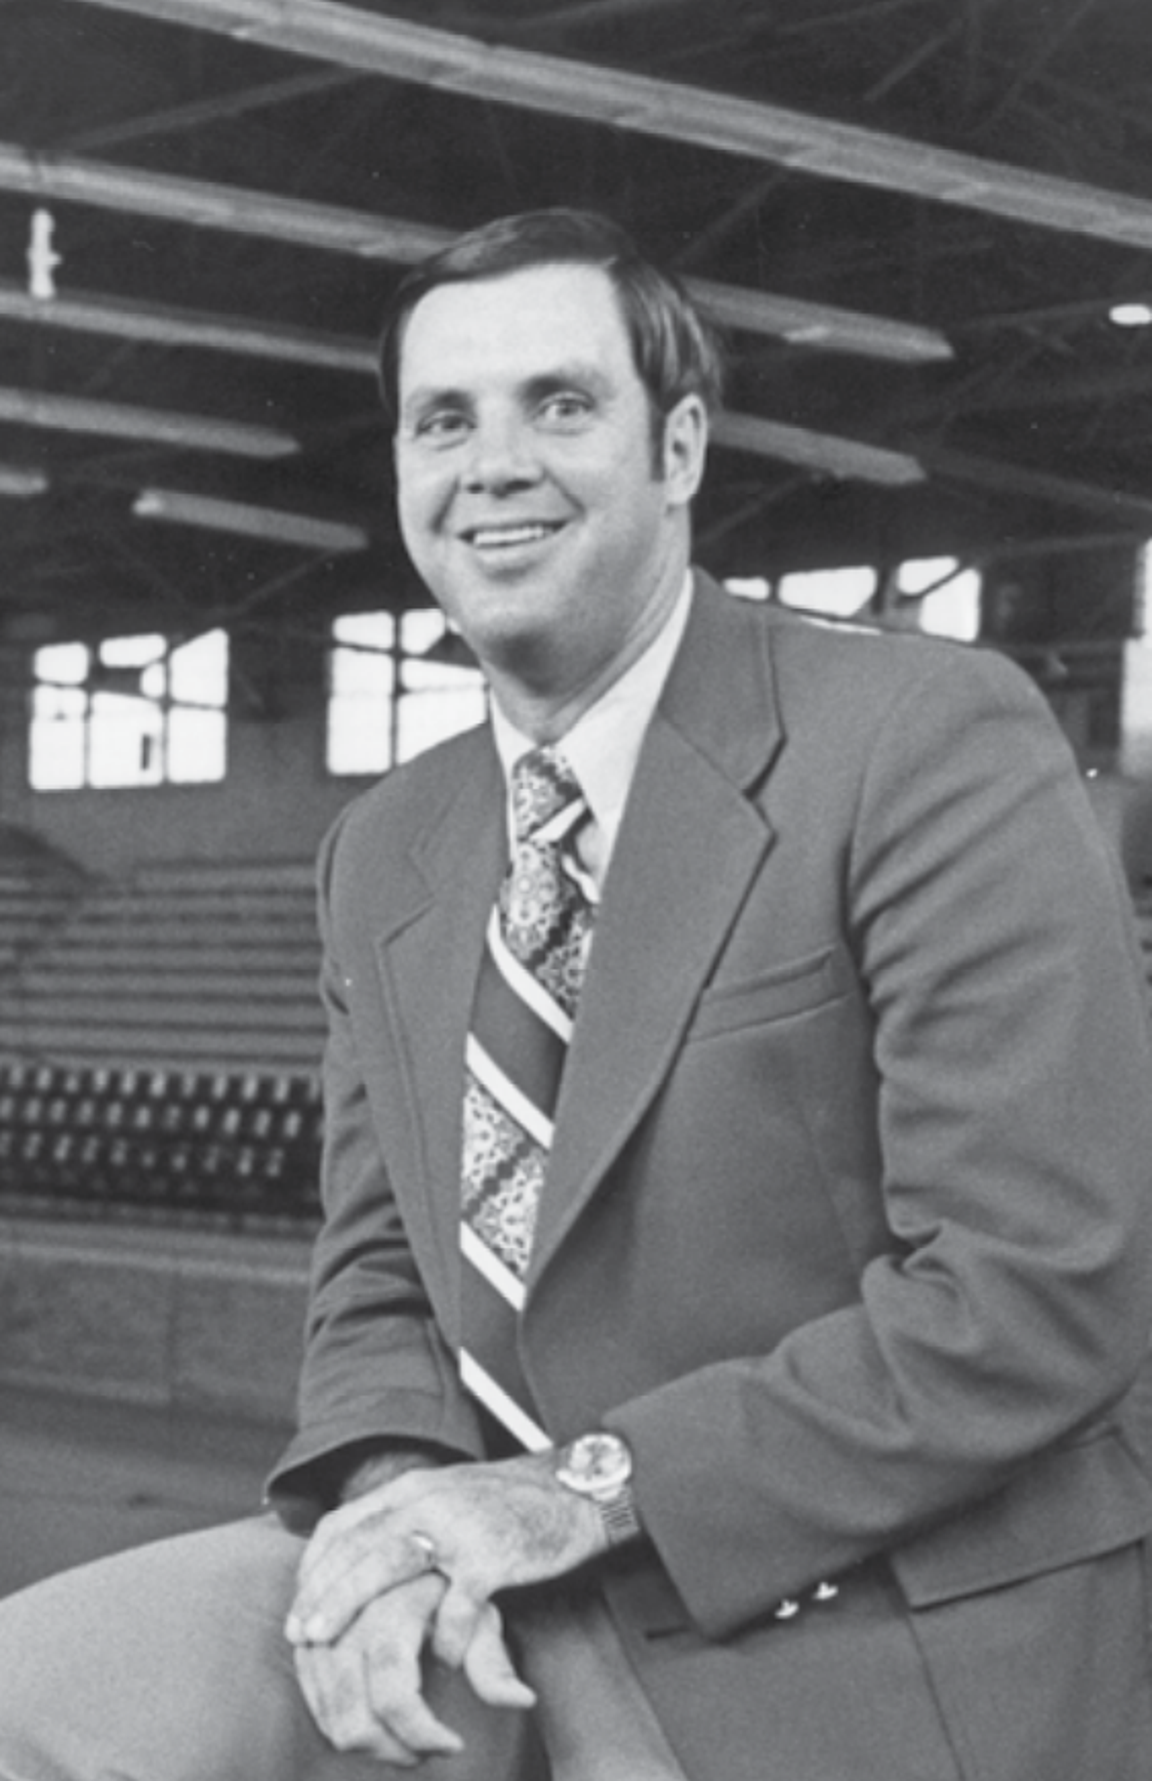 Former USI head coach and athletics director Wayne Boultinghouse won 111 games from 1974-81.